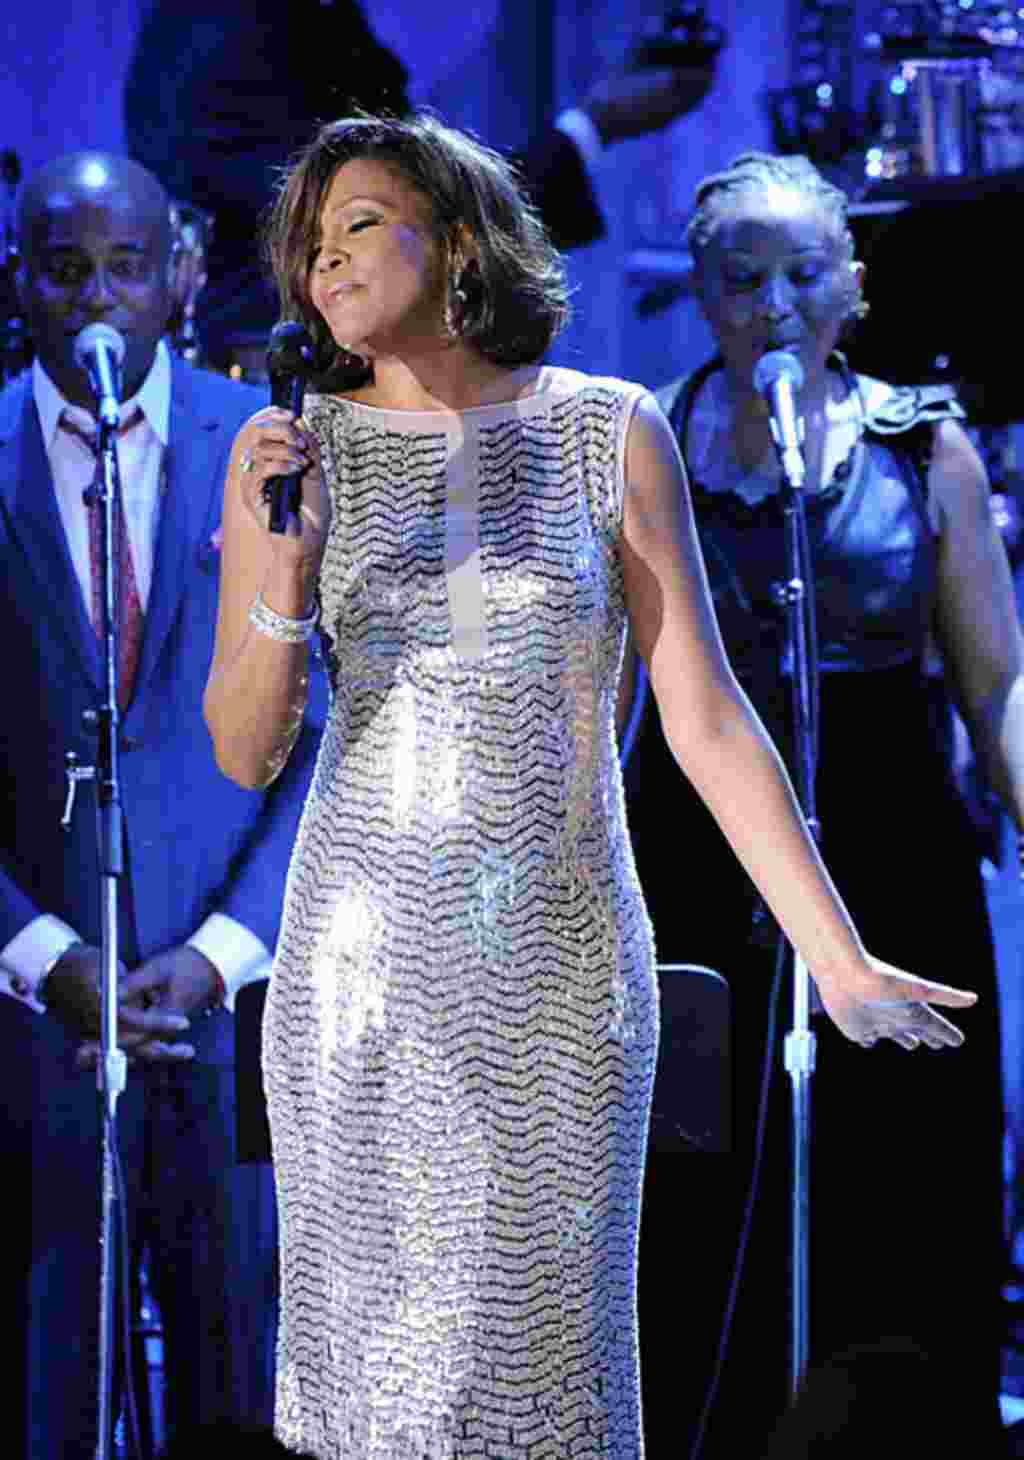 In this February 13, 2011 file photo, singer Whitney Houston performs at the pre-Grammy gala in Beverly Hills, California. (AP)